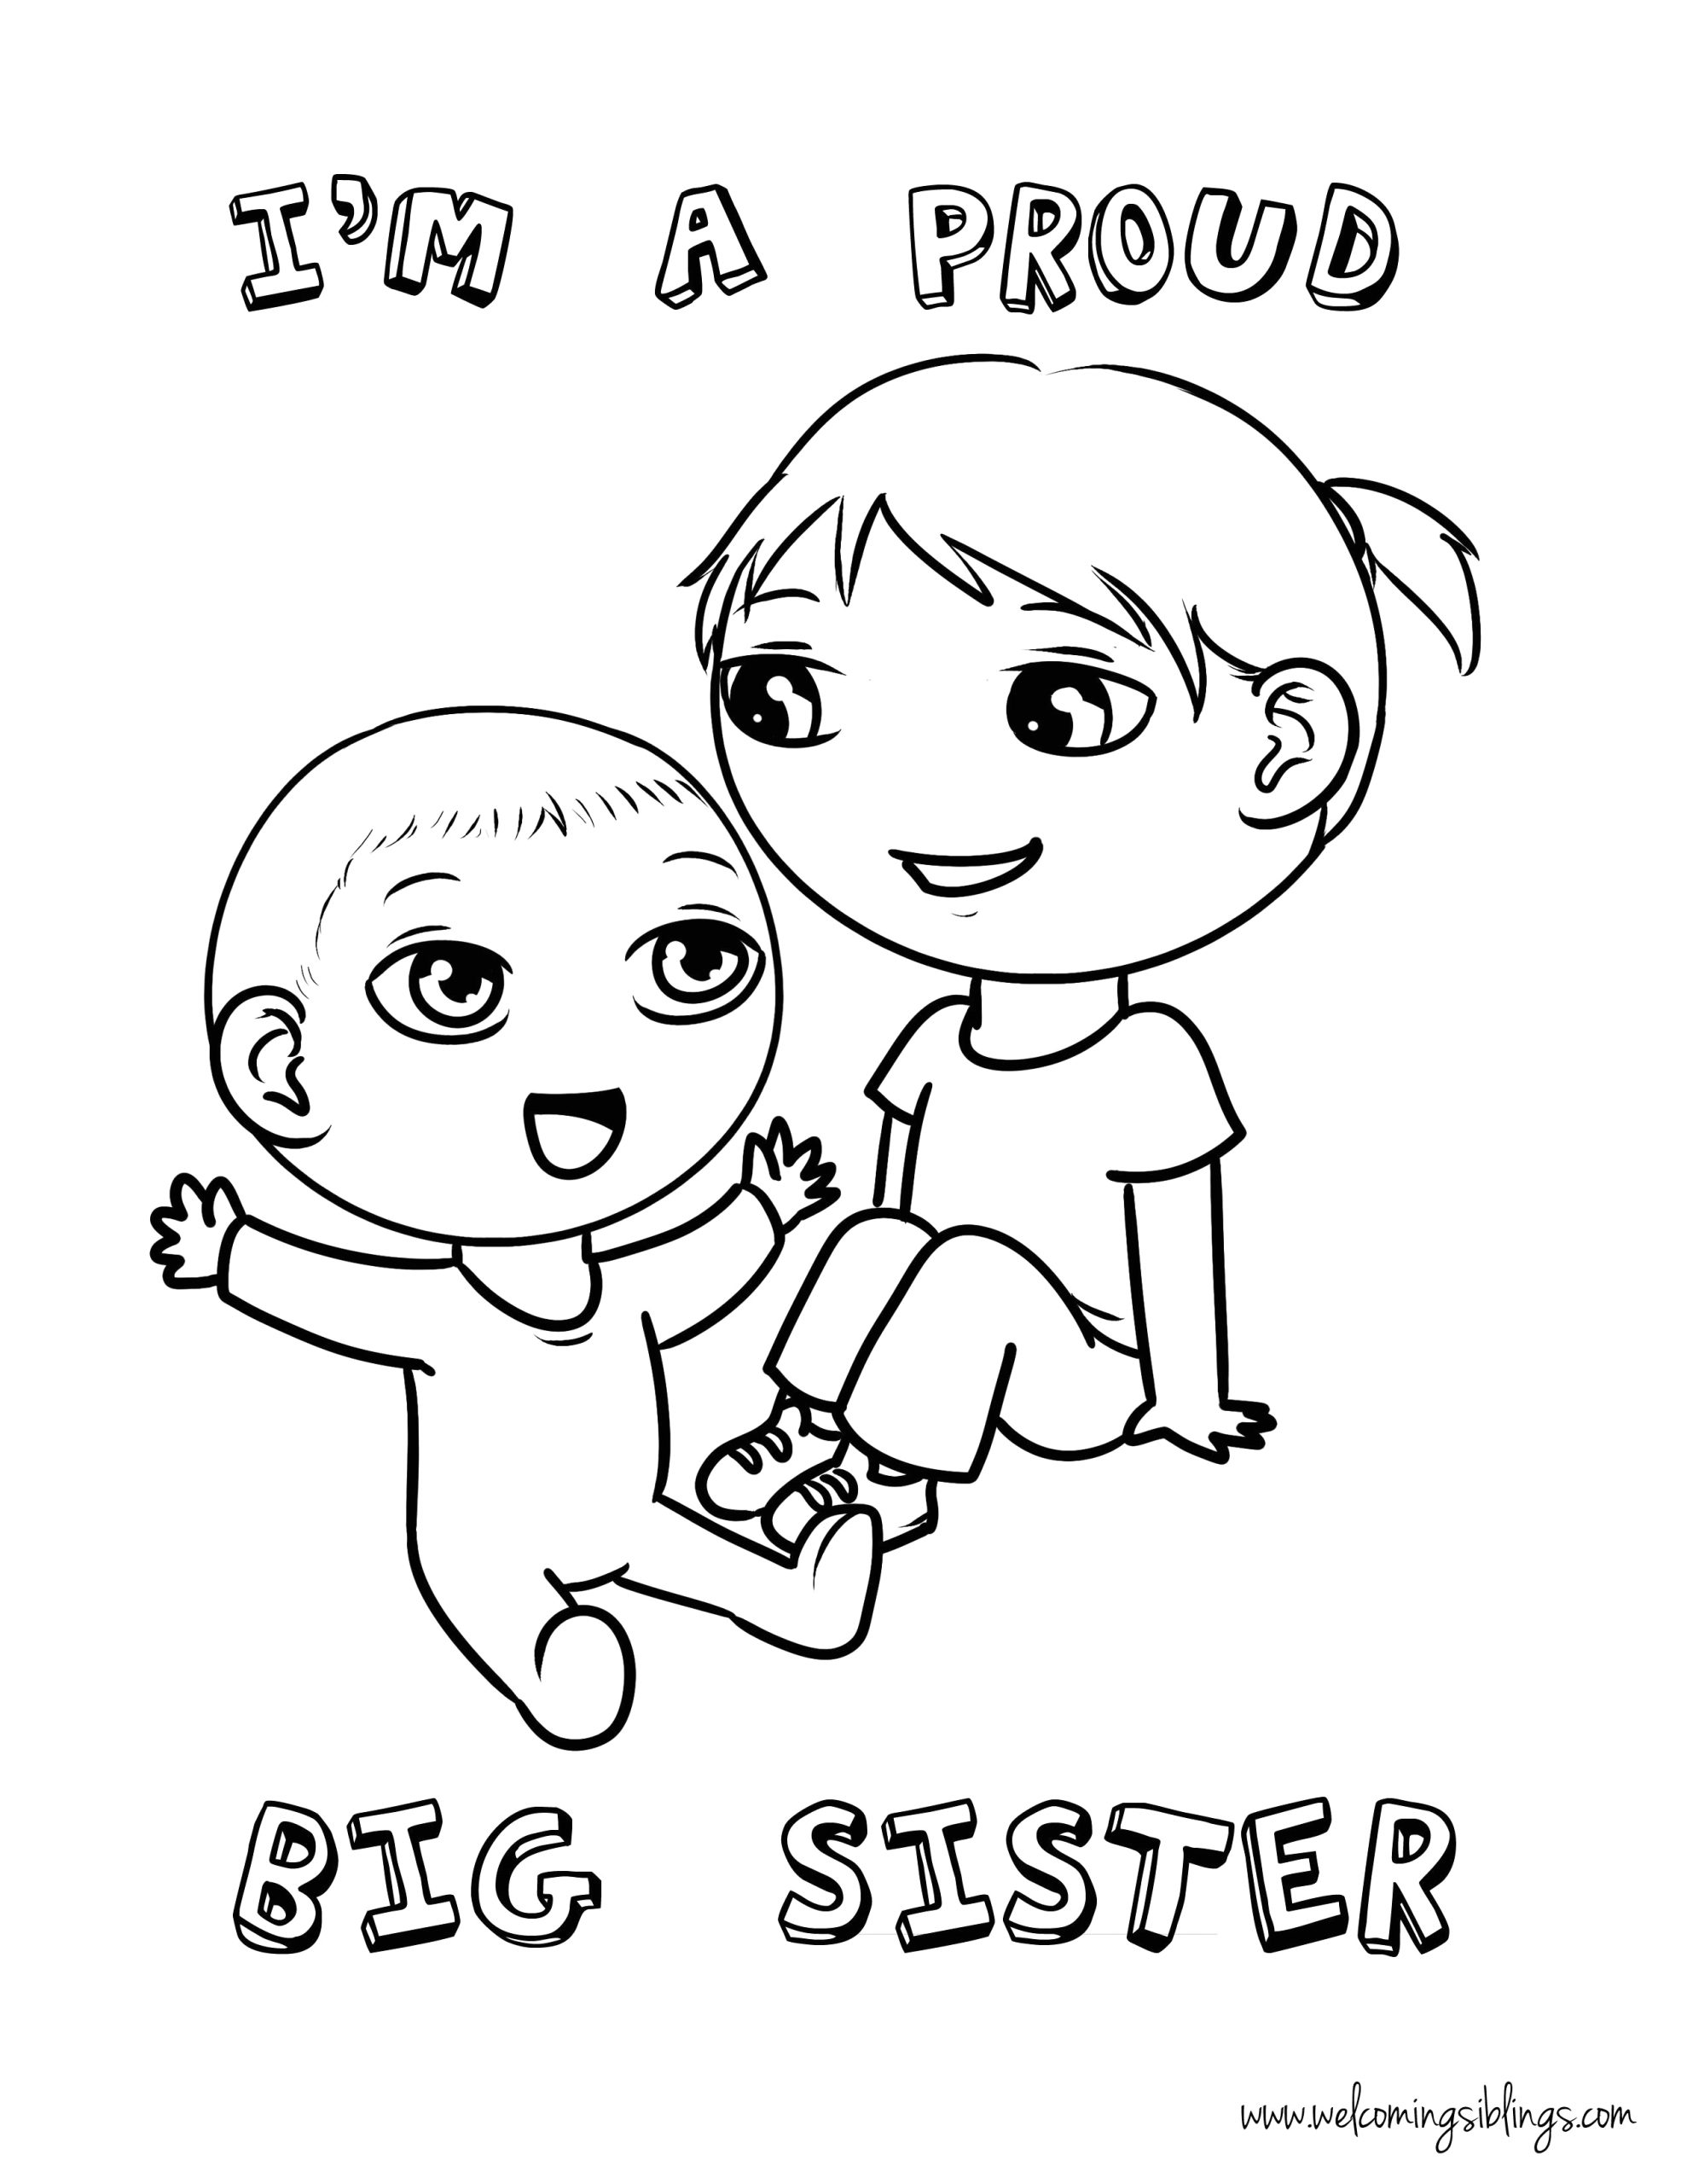 Lol Big Sister and Little Sister Coloring Pages Lol Surprise Doll Coloring Pages at Getdrawings